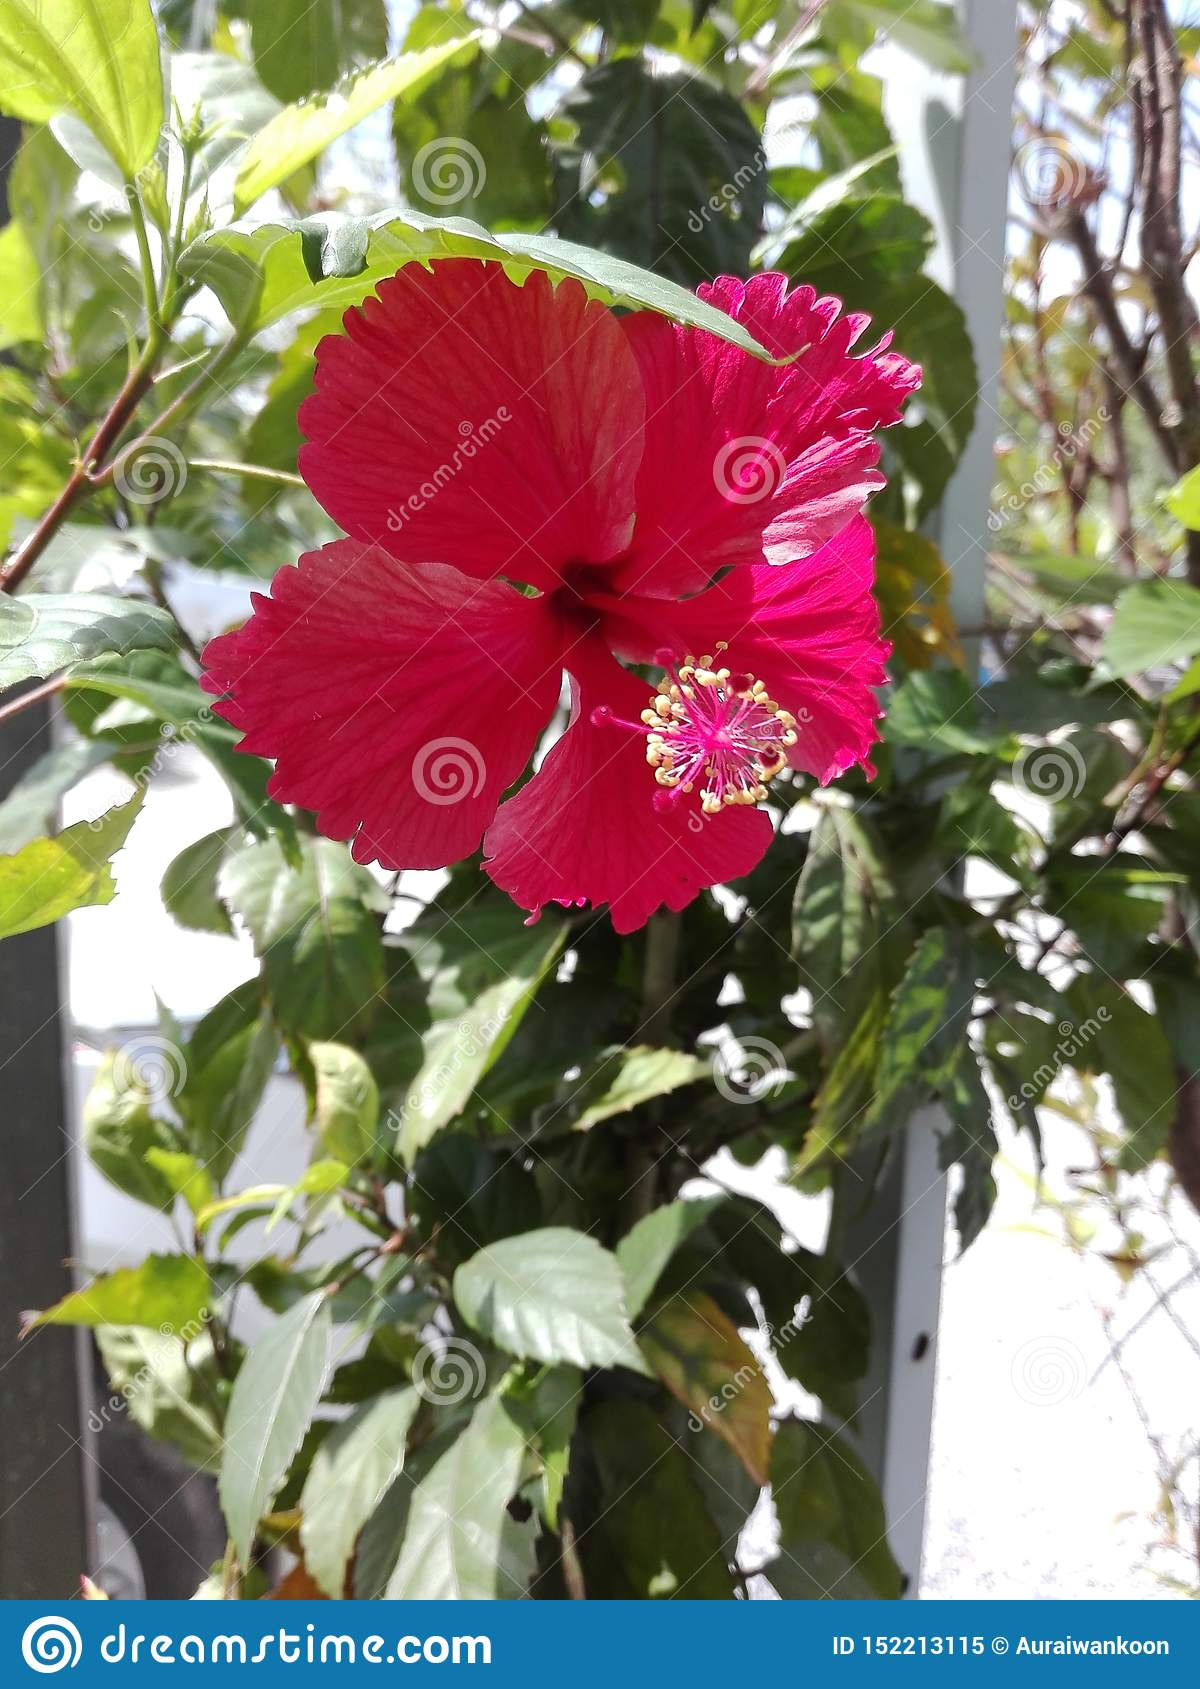 Red Hibiscus Flower Are Blooming Stock Image - Image of hibiscus